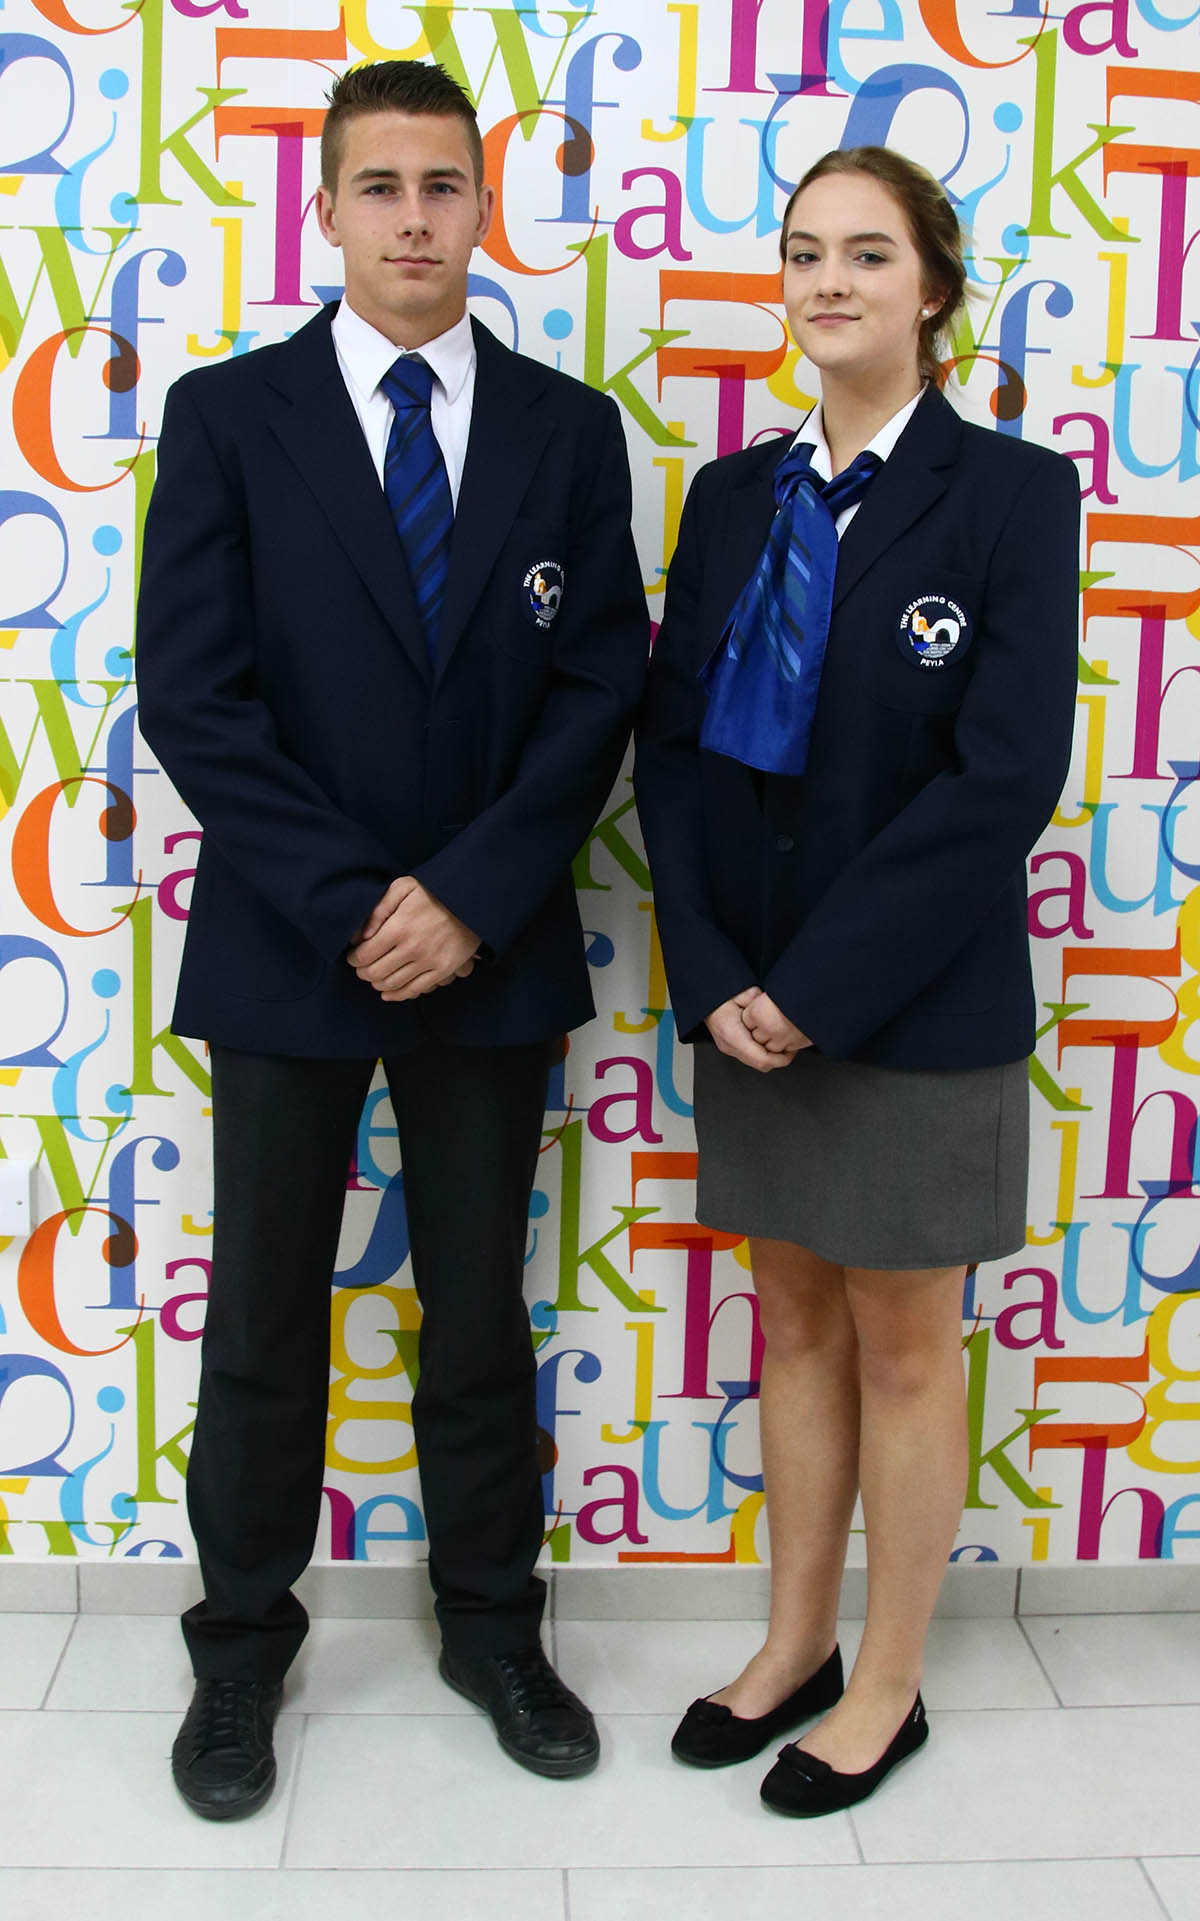 TLC Private School - School Uniform - 6th Form